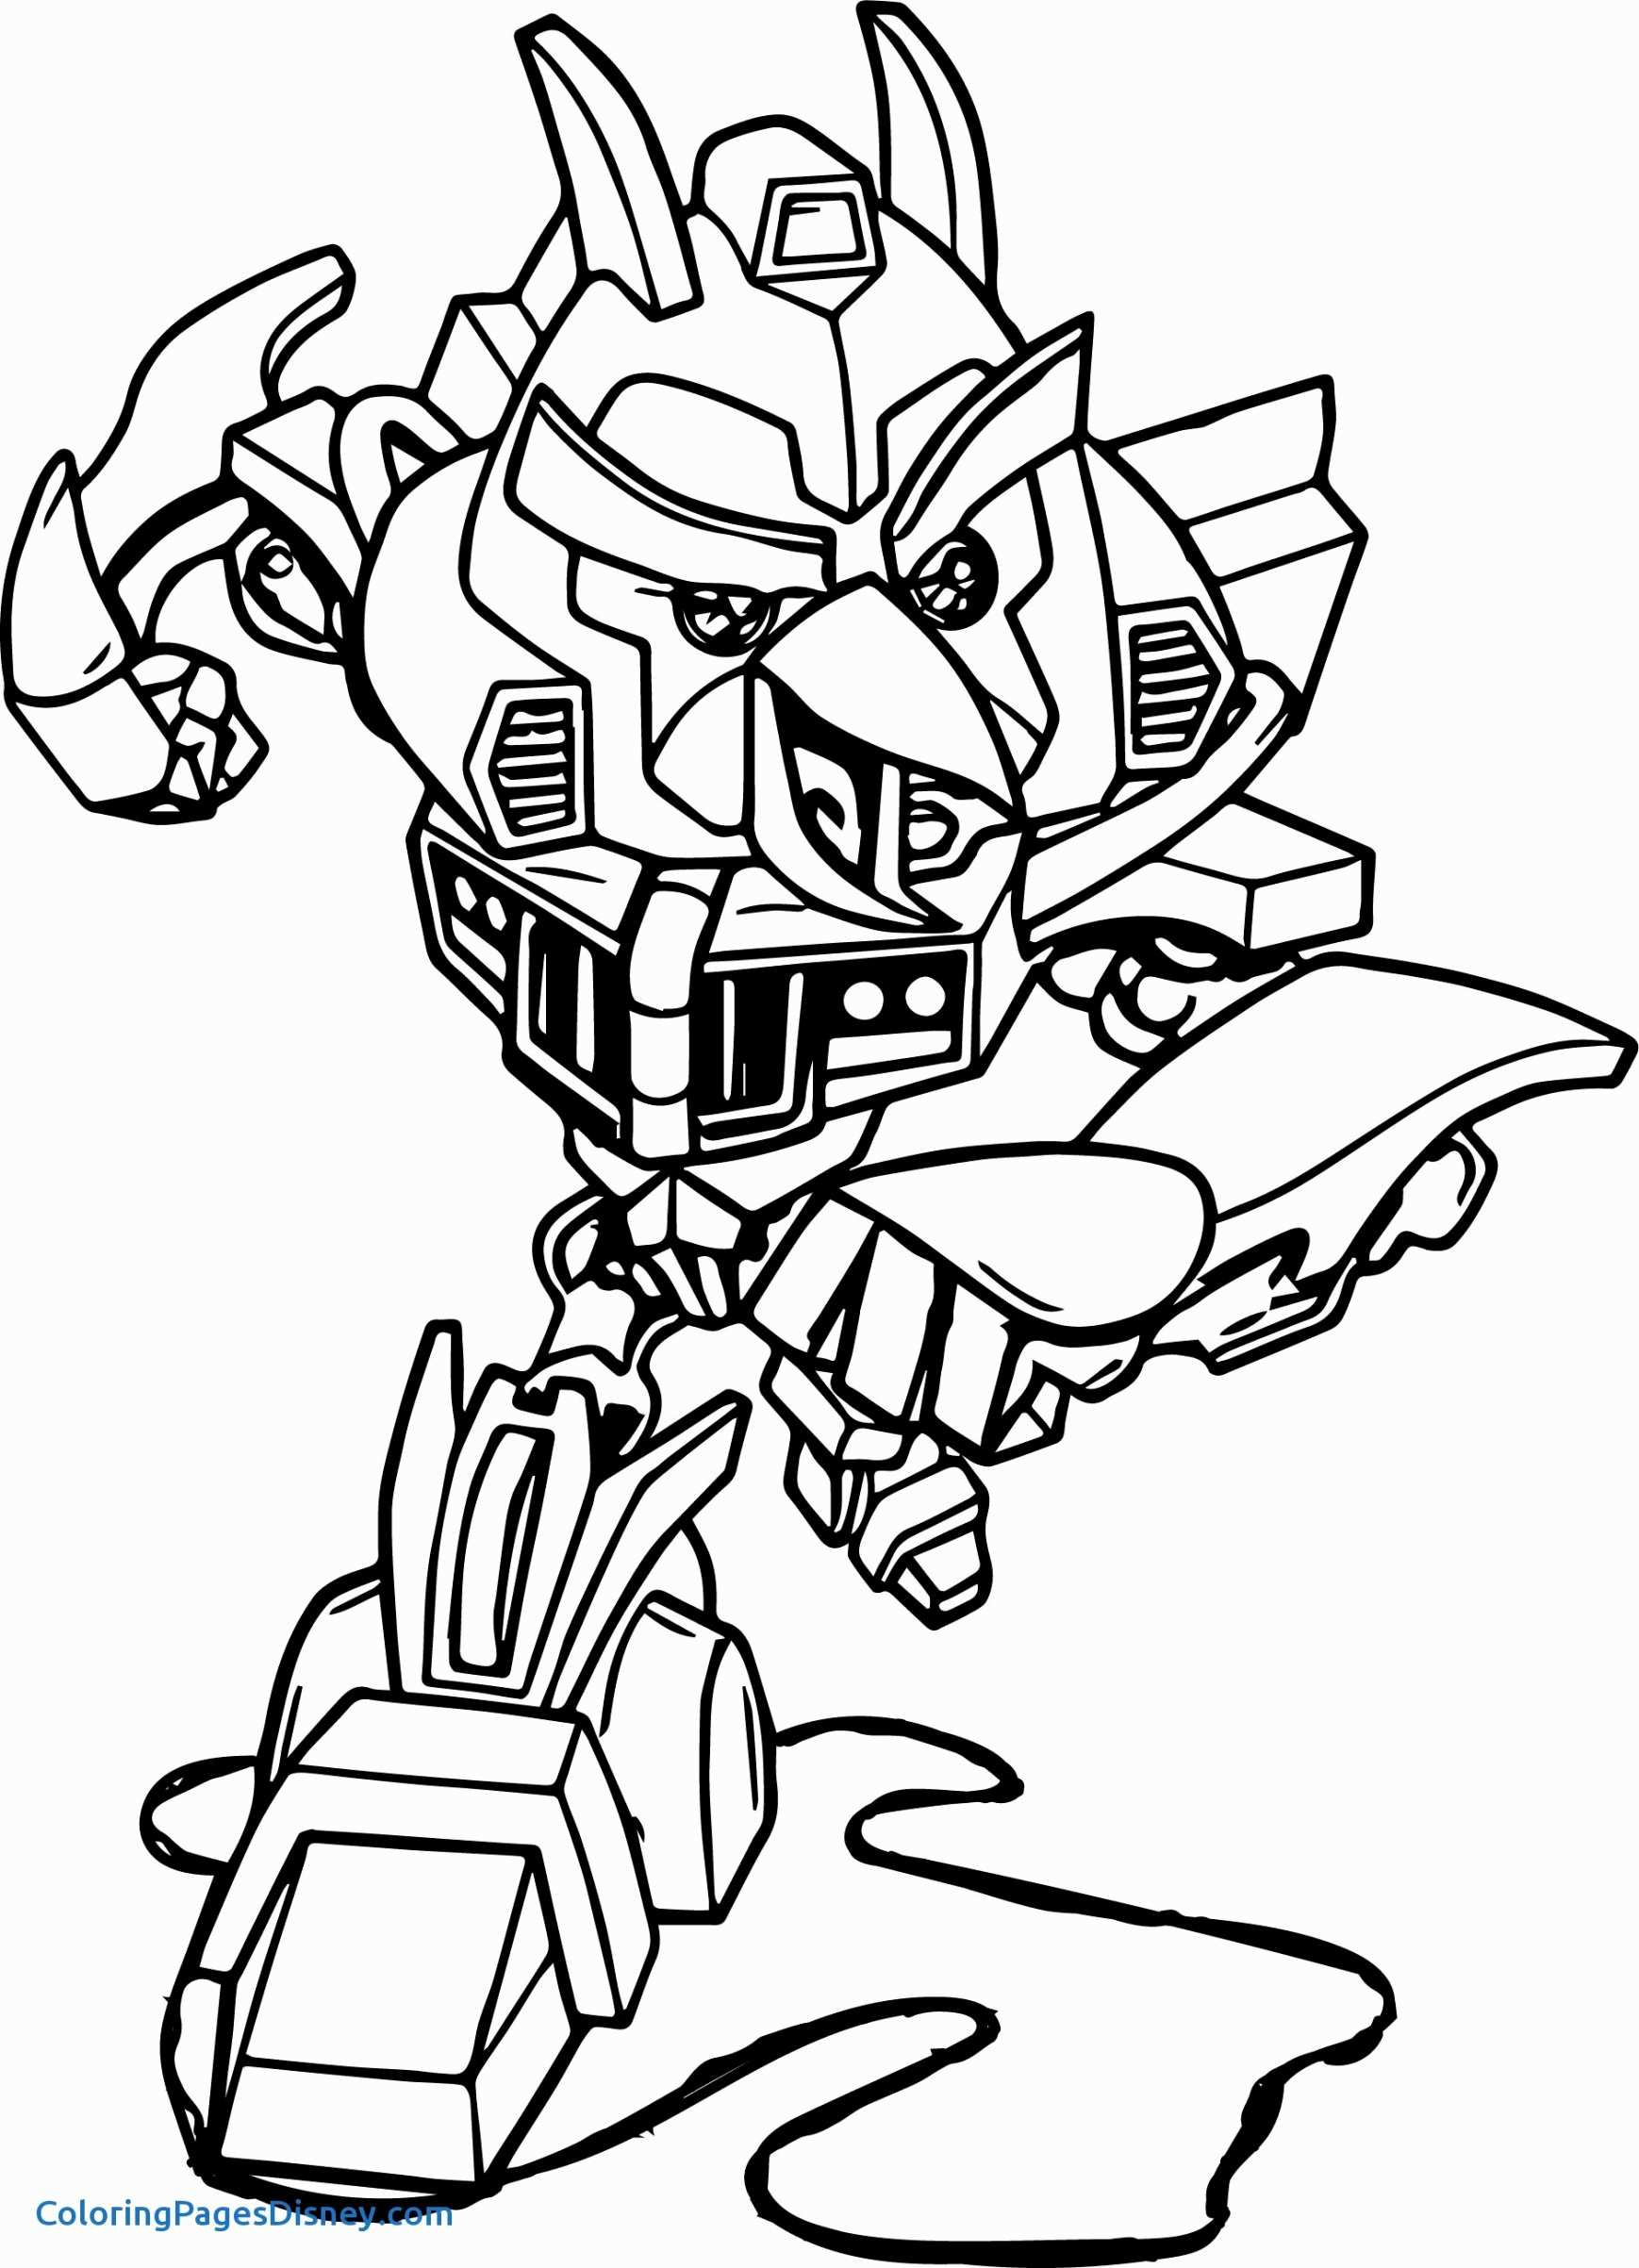 Transformer Une Image En Coloriage Frais Coloriage Magique encequiconcerne Transformer Photo En Coloriage